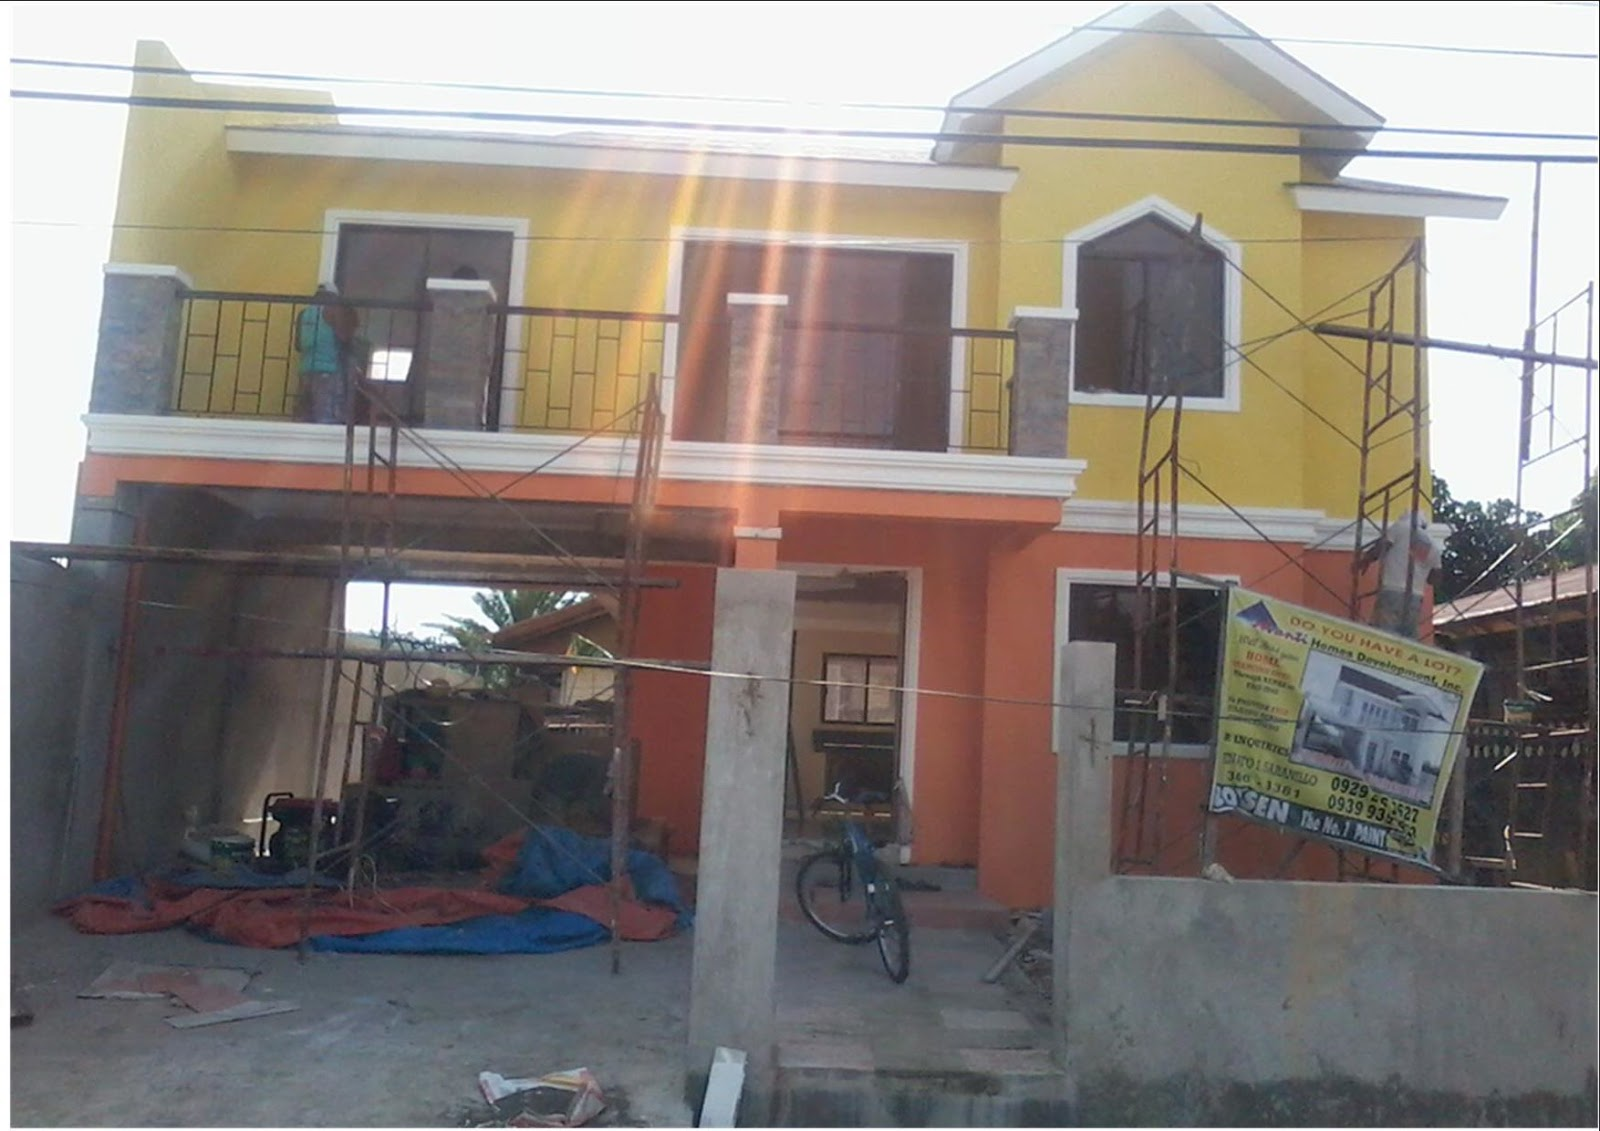 house design house designs philippines house design phillipine house design home design modern house design philippine house designs dream houses house design philippines homes designs plans dream homes homes builders custom home houses designs